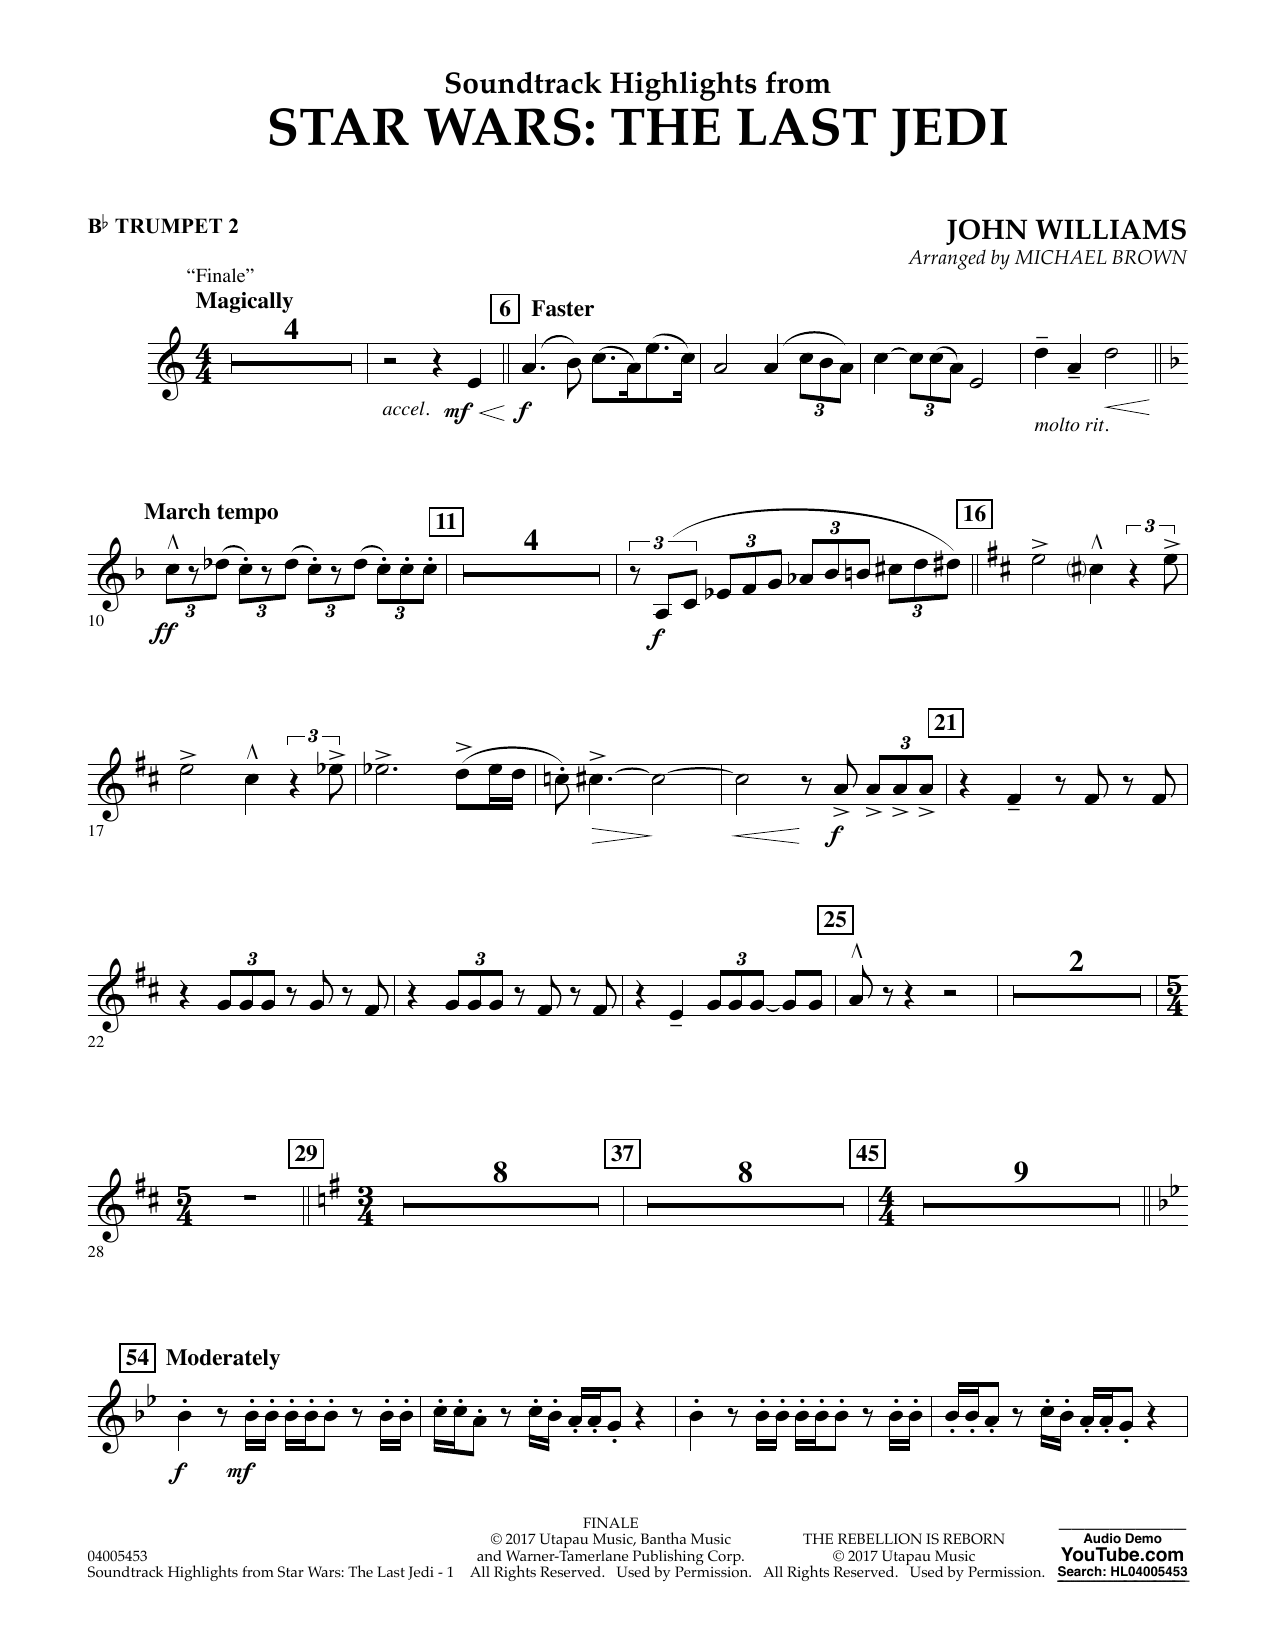 Soundtrack Highlights from Star Wars: The Last Jedi - Bb Trumpet 2 (Concert Band)